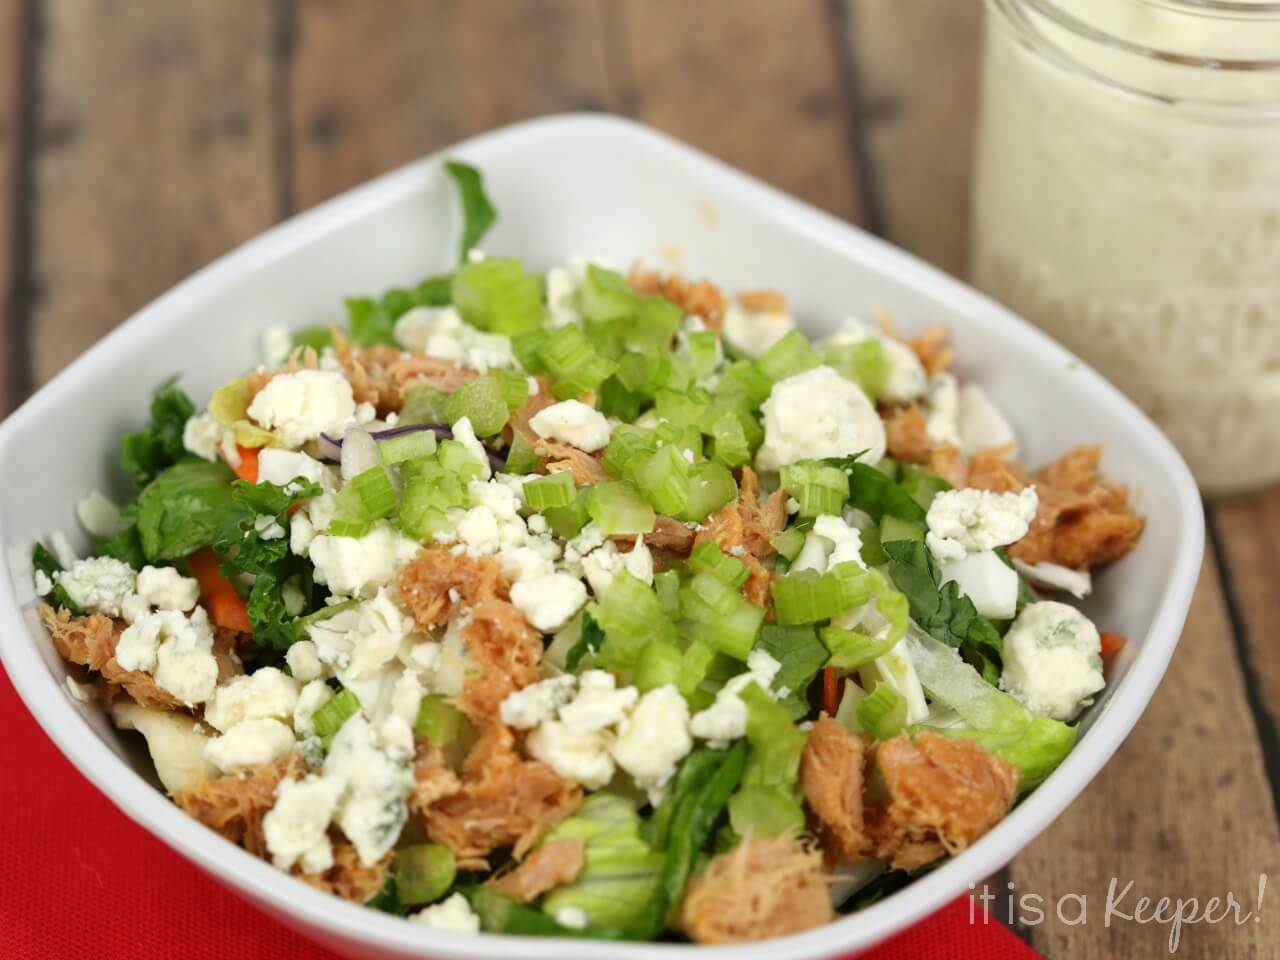 Buffalo Tuna Chopped Salad – an easy and delicious salad recipe that's ready in under 10 minutes